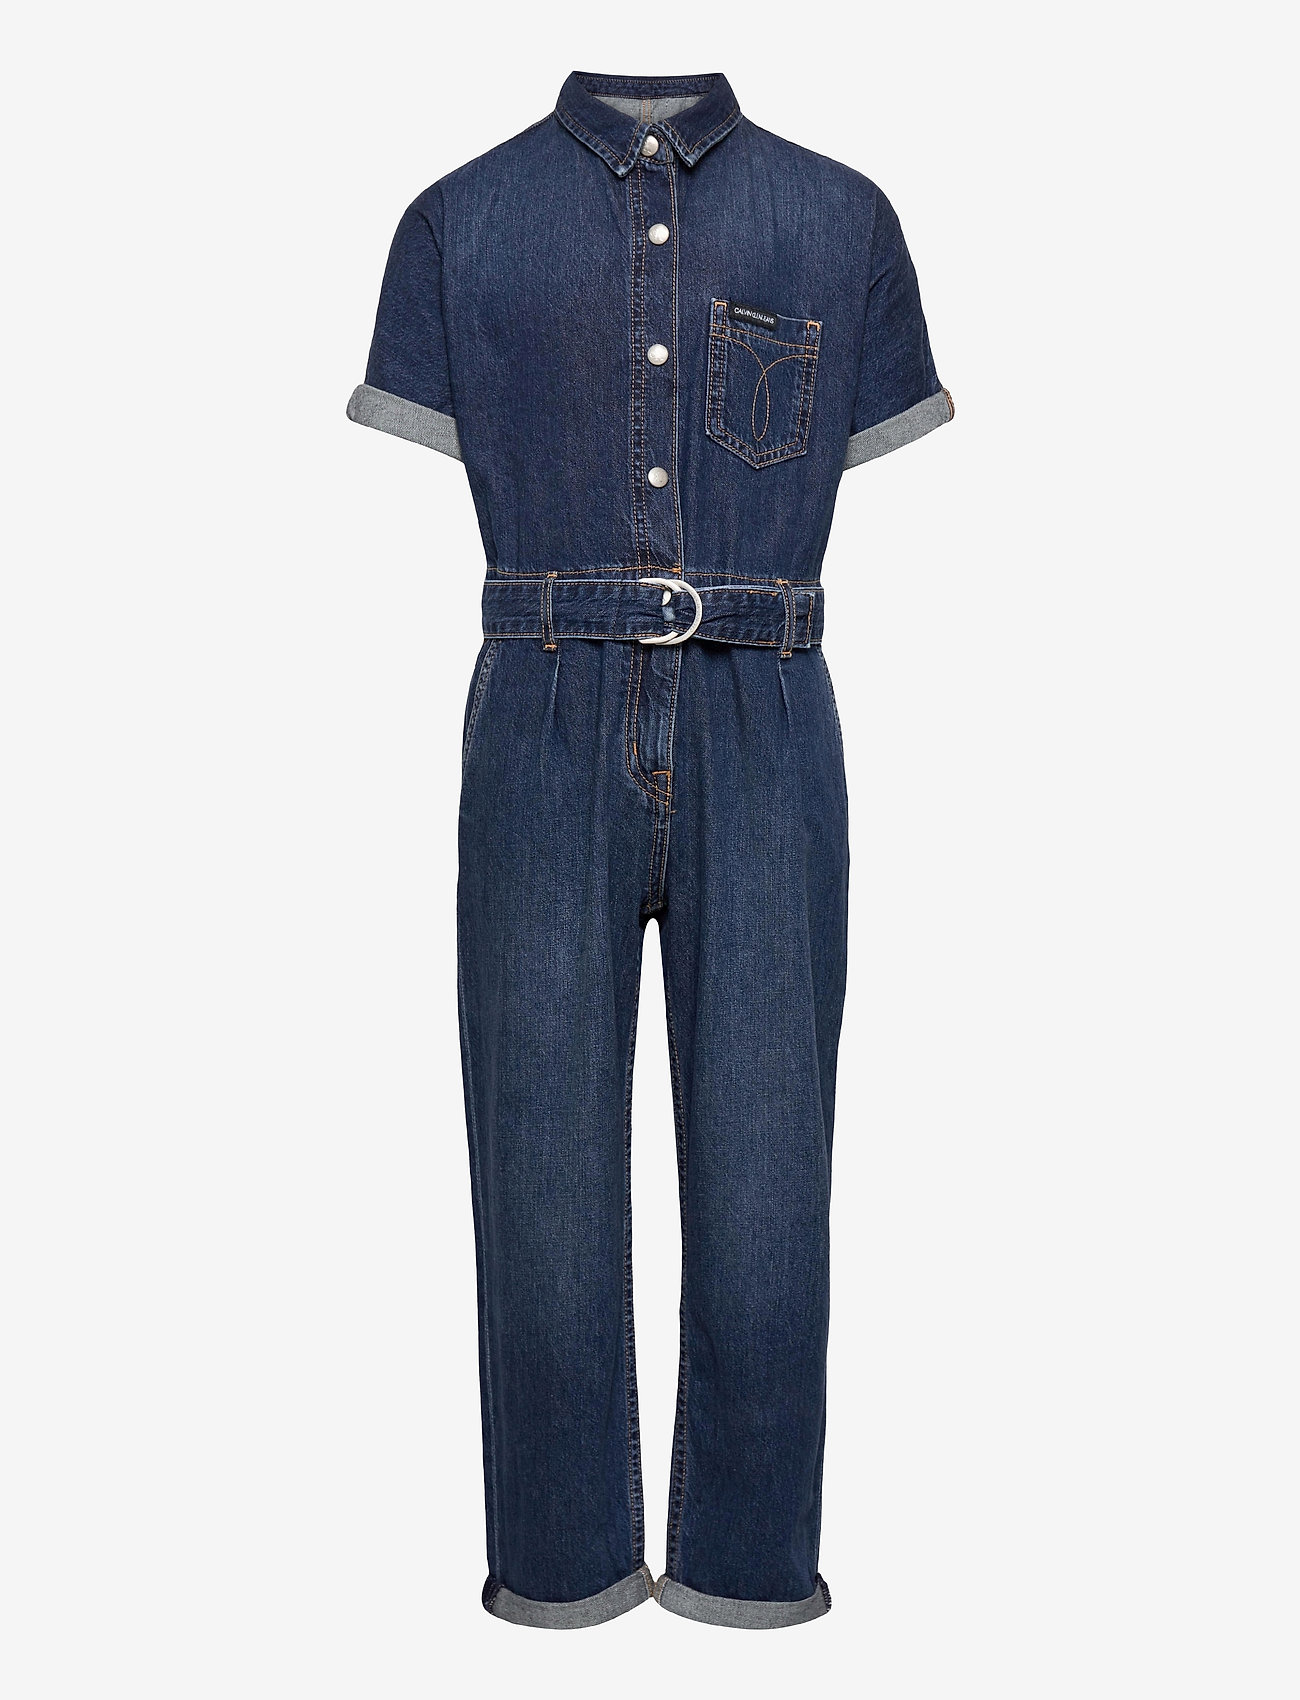 Calvin Klein - JUMPSUIT LT WT AUTH MID RD - jumpsuits - light weight authentic mid rigid - 0